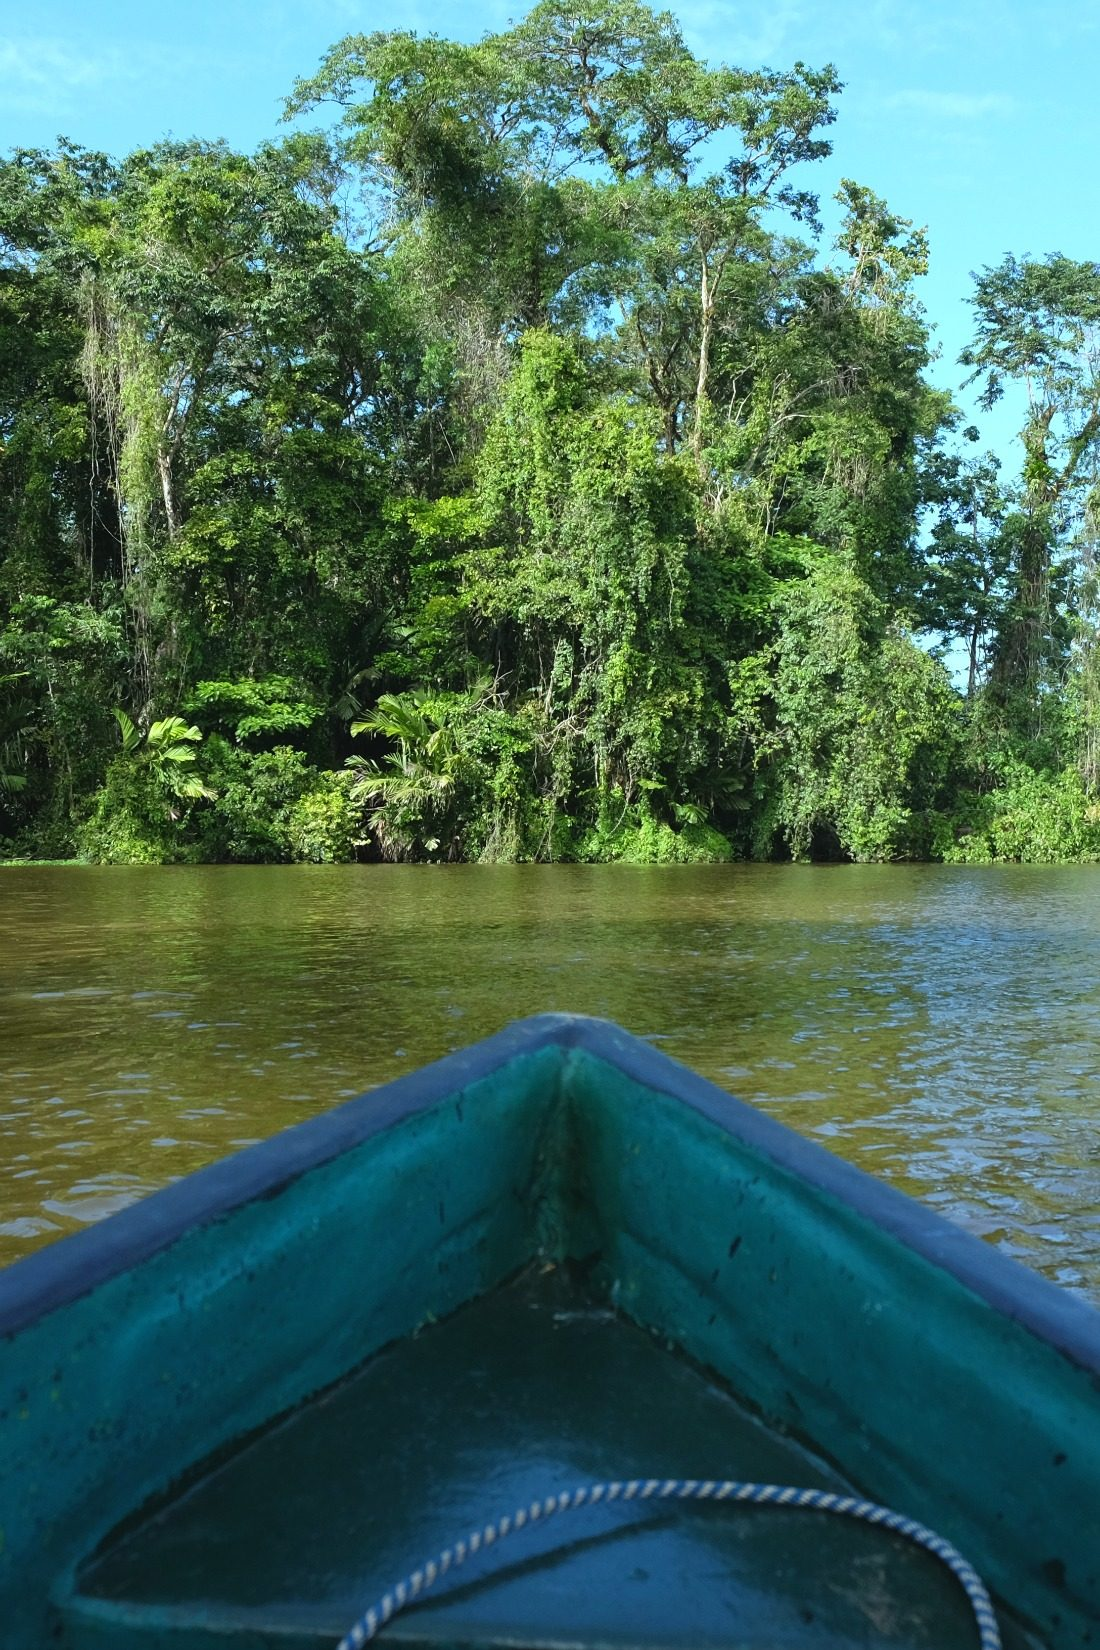 Jungle expedition by canoe. Tortuguero National Park. Costa Rica